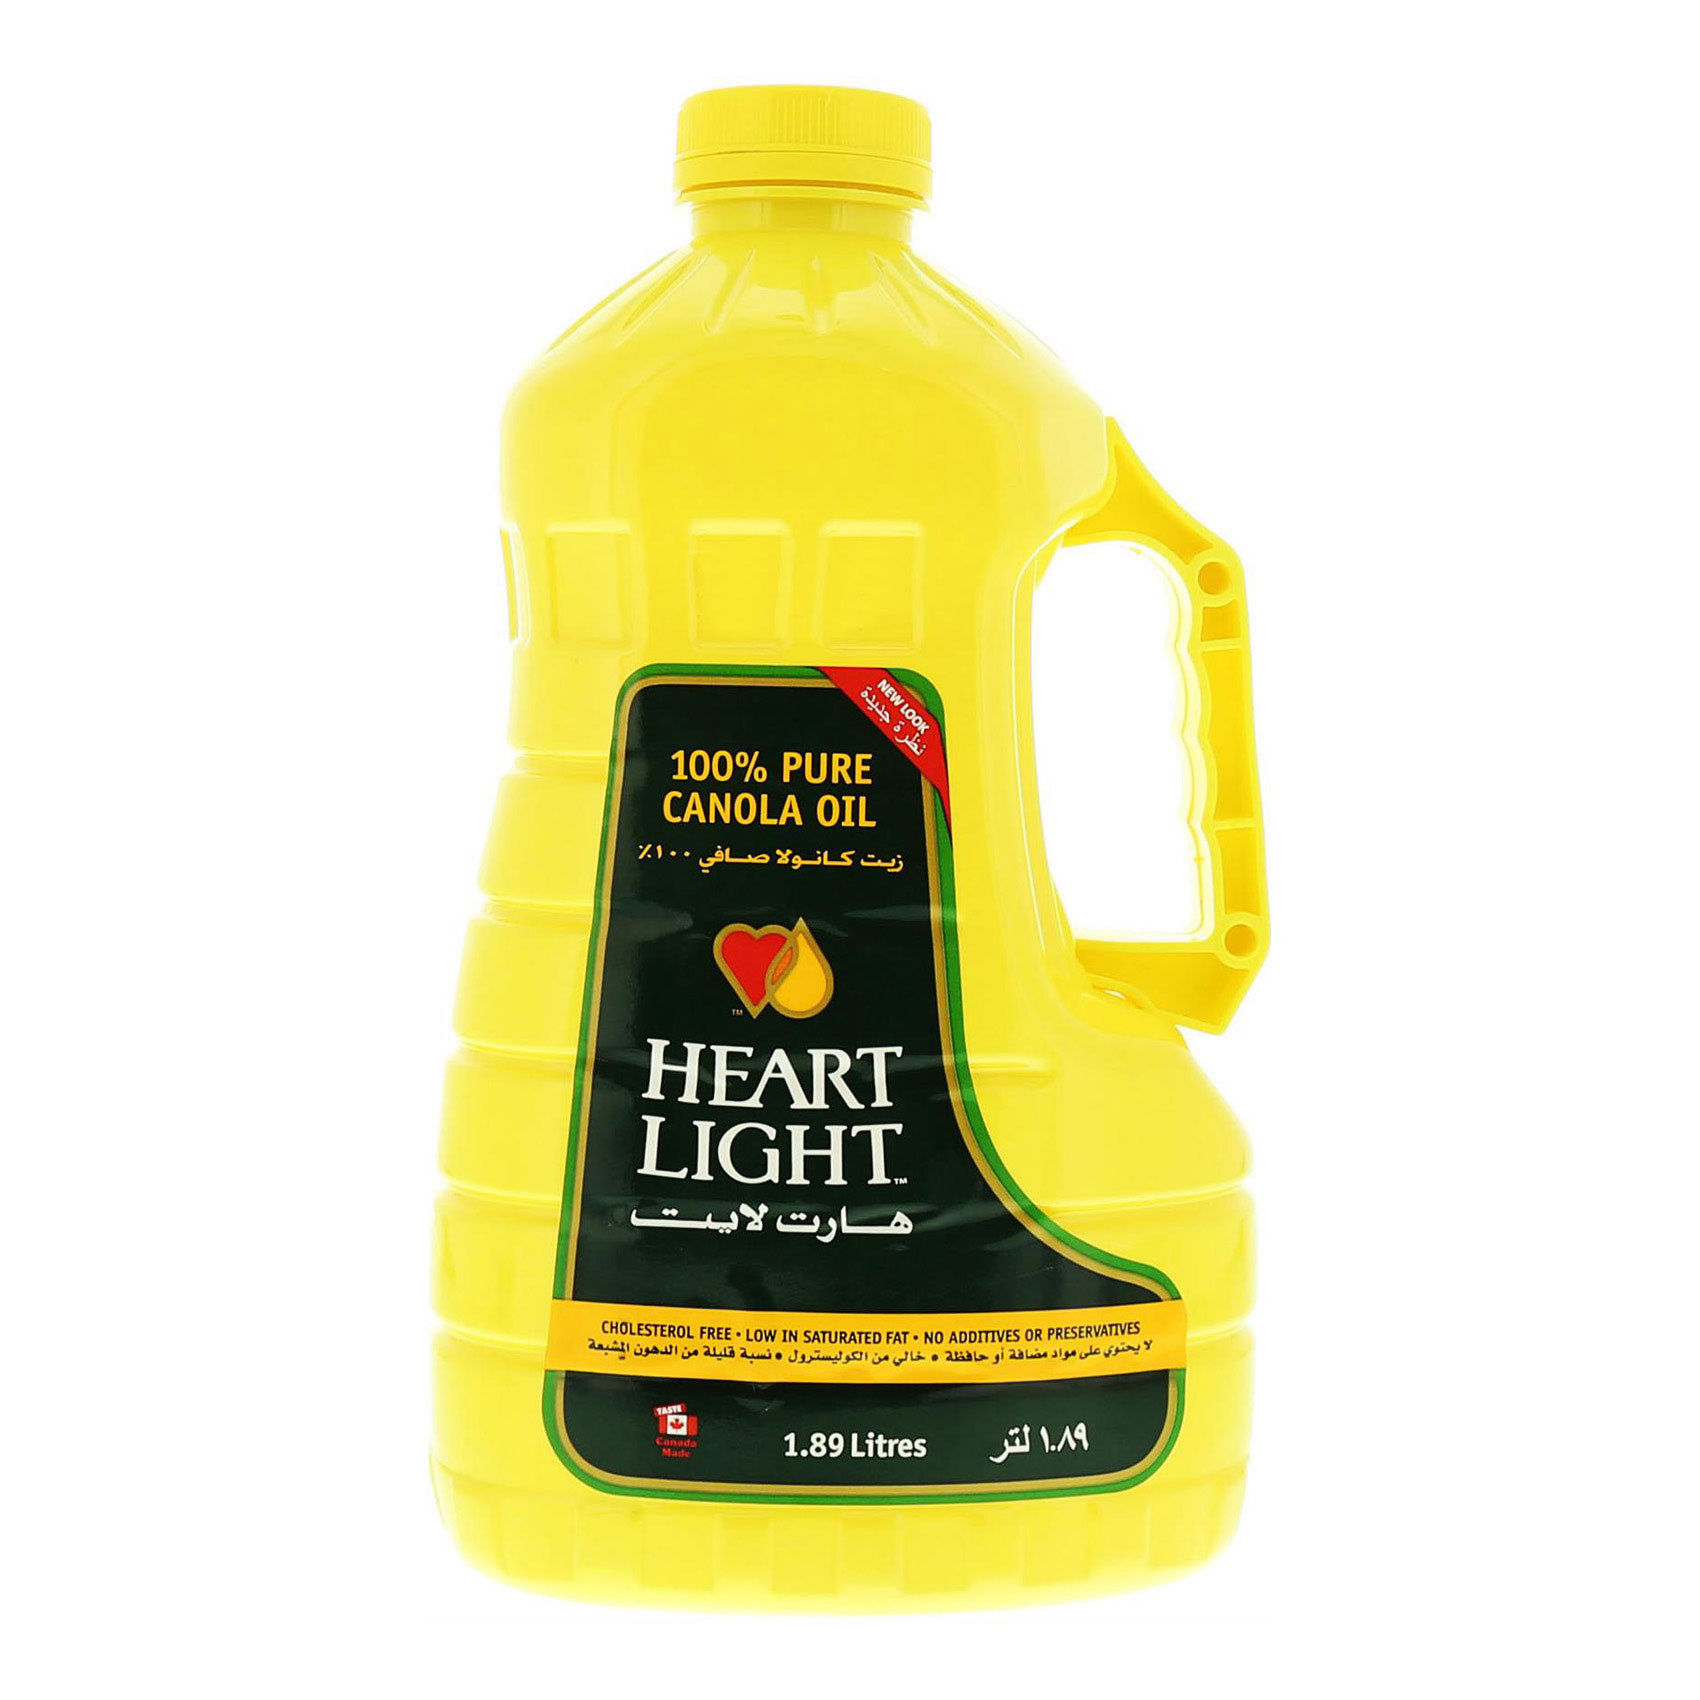 HEARTLIGHT CANOLA OIL 1.89L